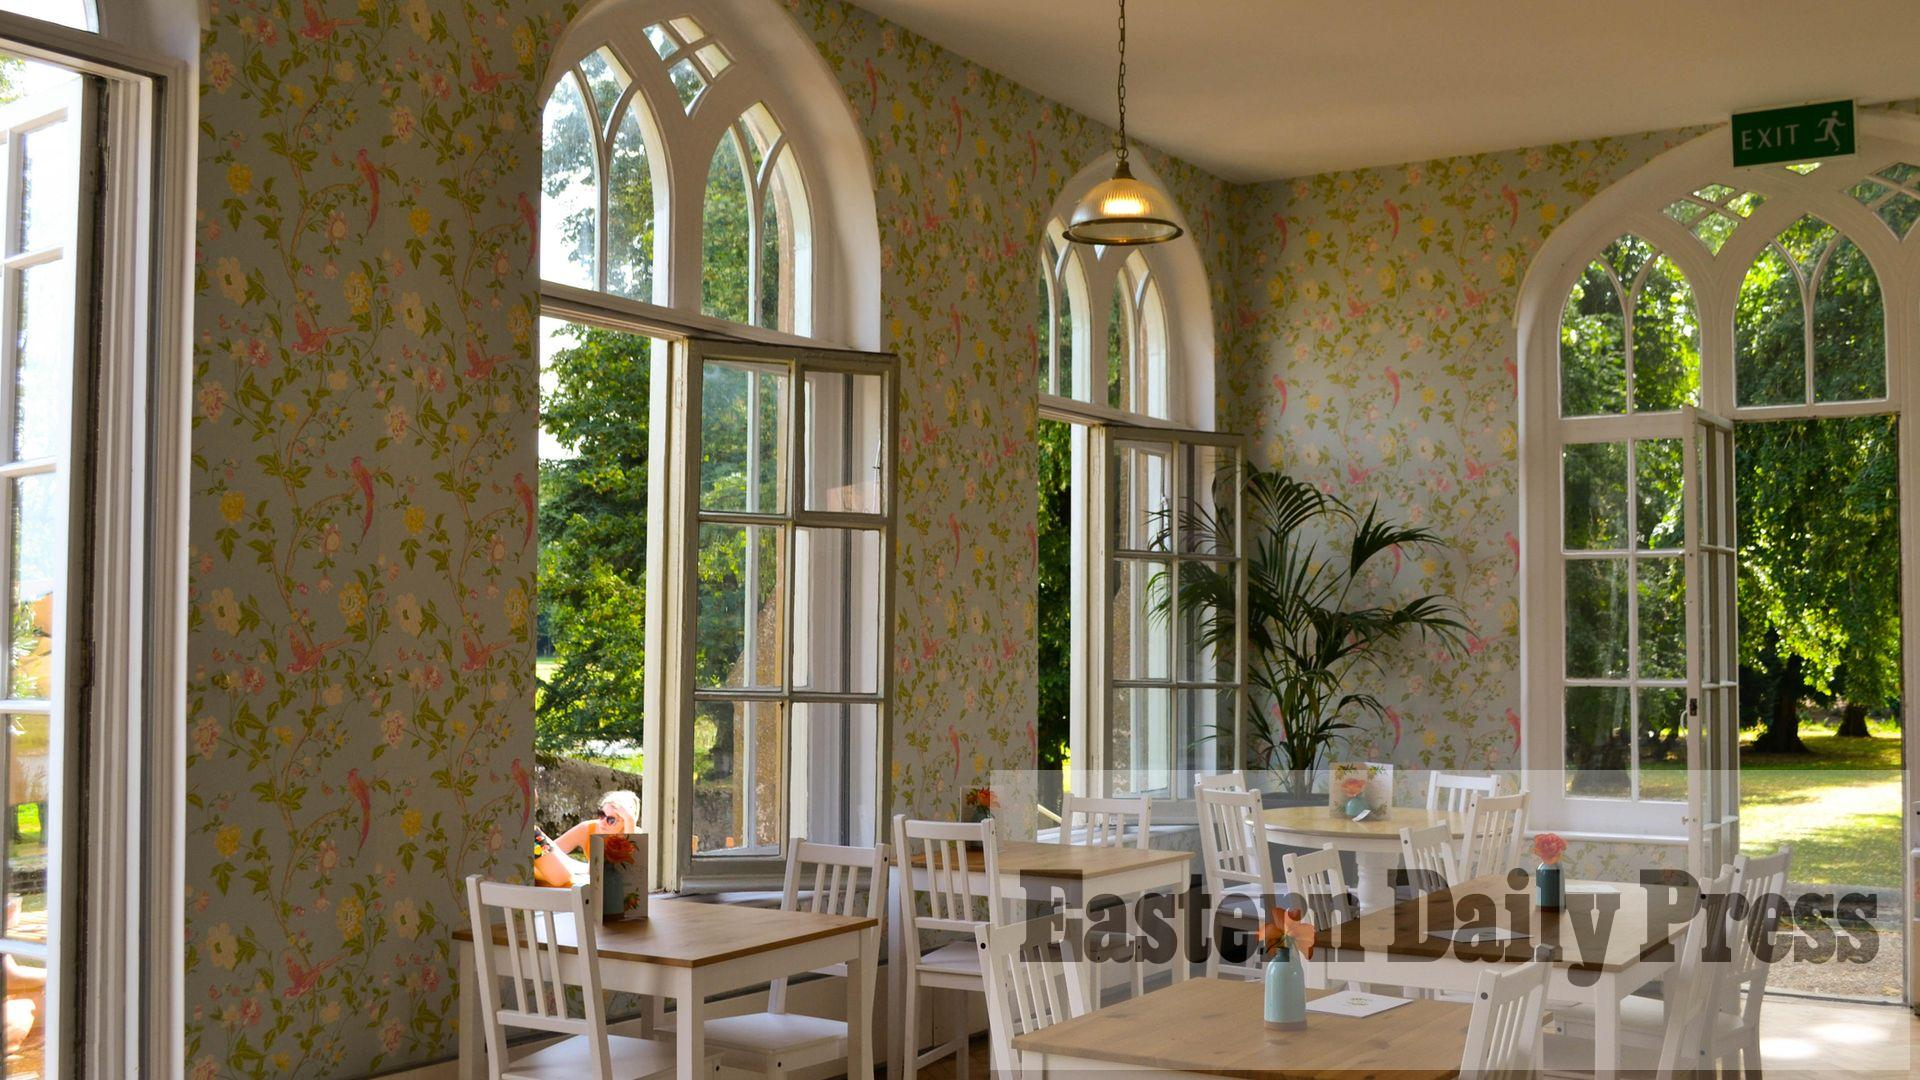 Why the Orangery Tea Room serves the 'perfect' savoury afternoon tea